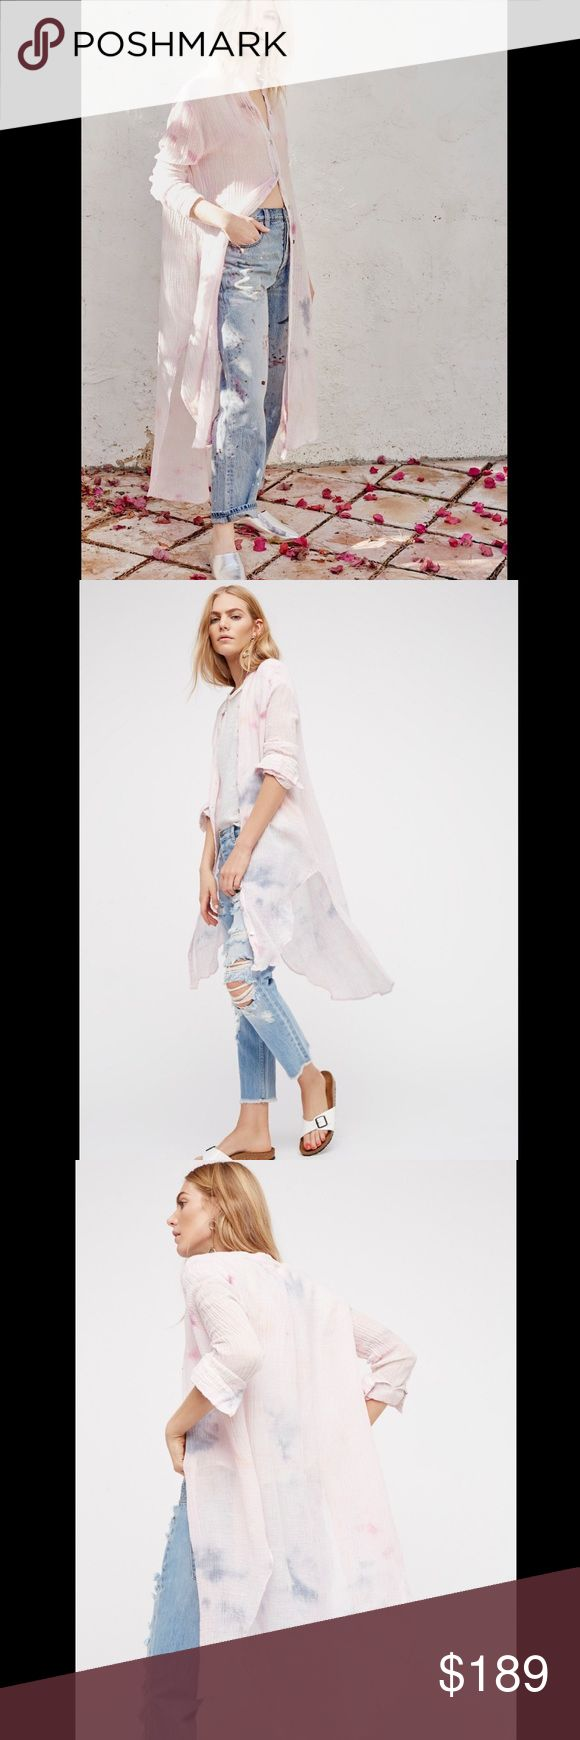 FREE PEOPLE tie dye button down maxi Super relaxed tie-dye buttondown in a maxi silhouette with a crinkly fabrication and unfinished edges for a lived-in look. Semi-sheer and side vent detailing. 314196  72% Linen, 28% Cotton  Retail: $168 Sizes: Medium  ❤I have over 300 new with tag Free People & More items for sale! I love to offer bundle discounts!  ❤No trades. I no longer discuss pricing in comments. Please use offer button to submit offer! 😊 Free People Tops Tunics